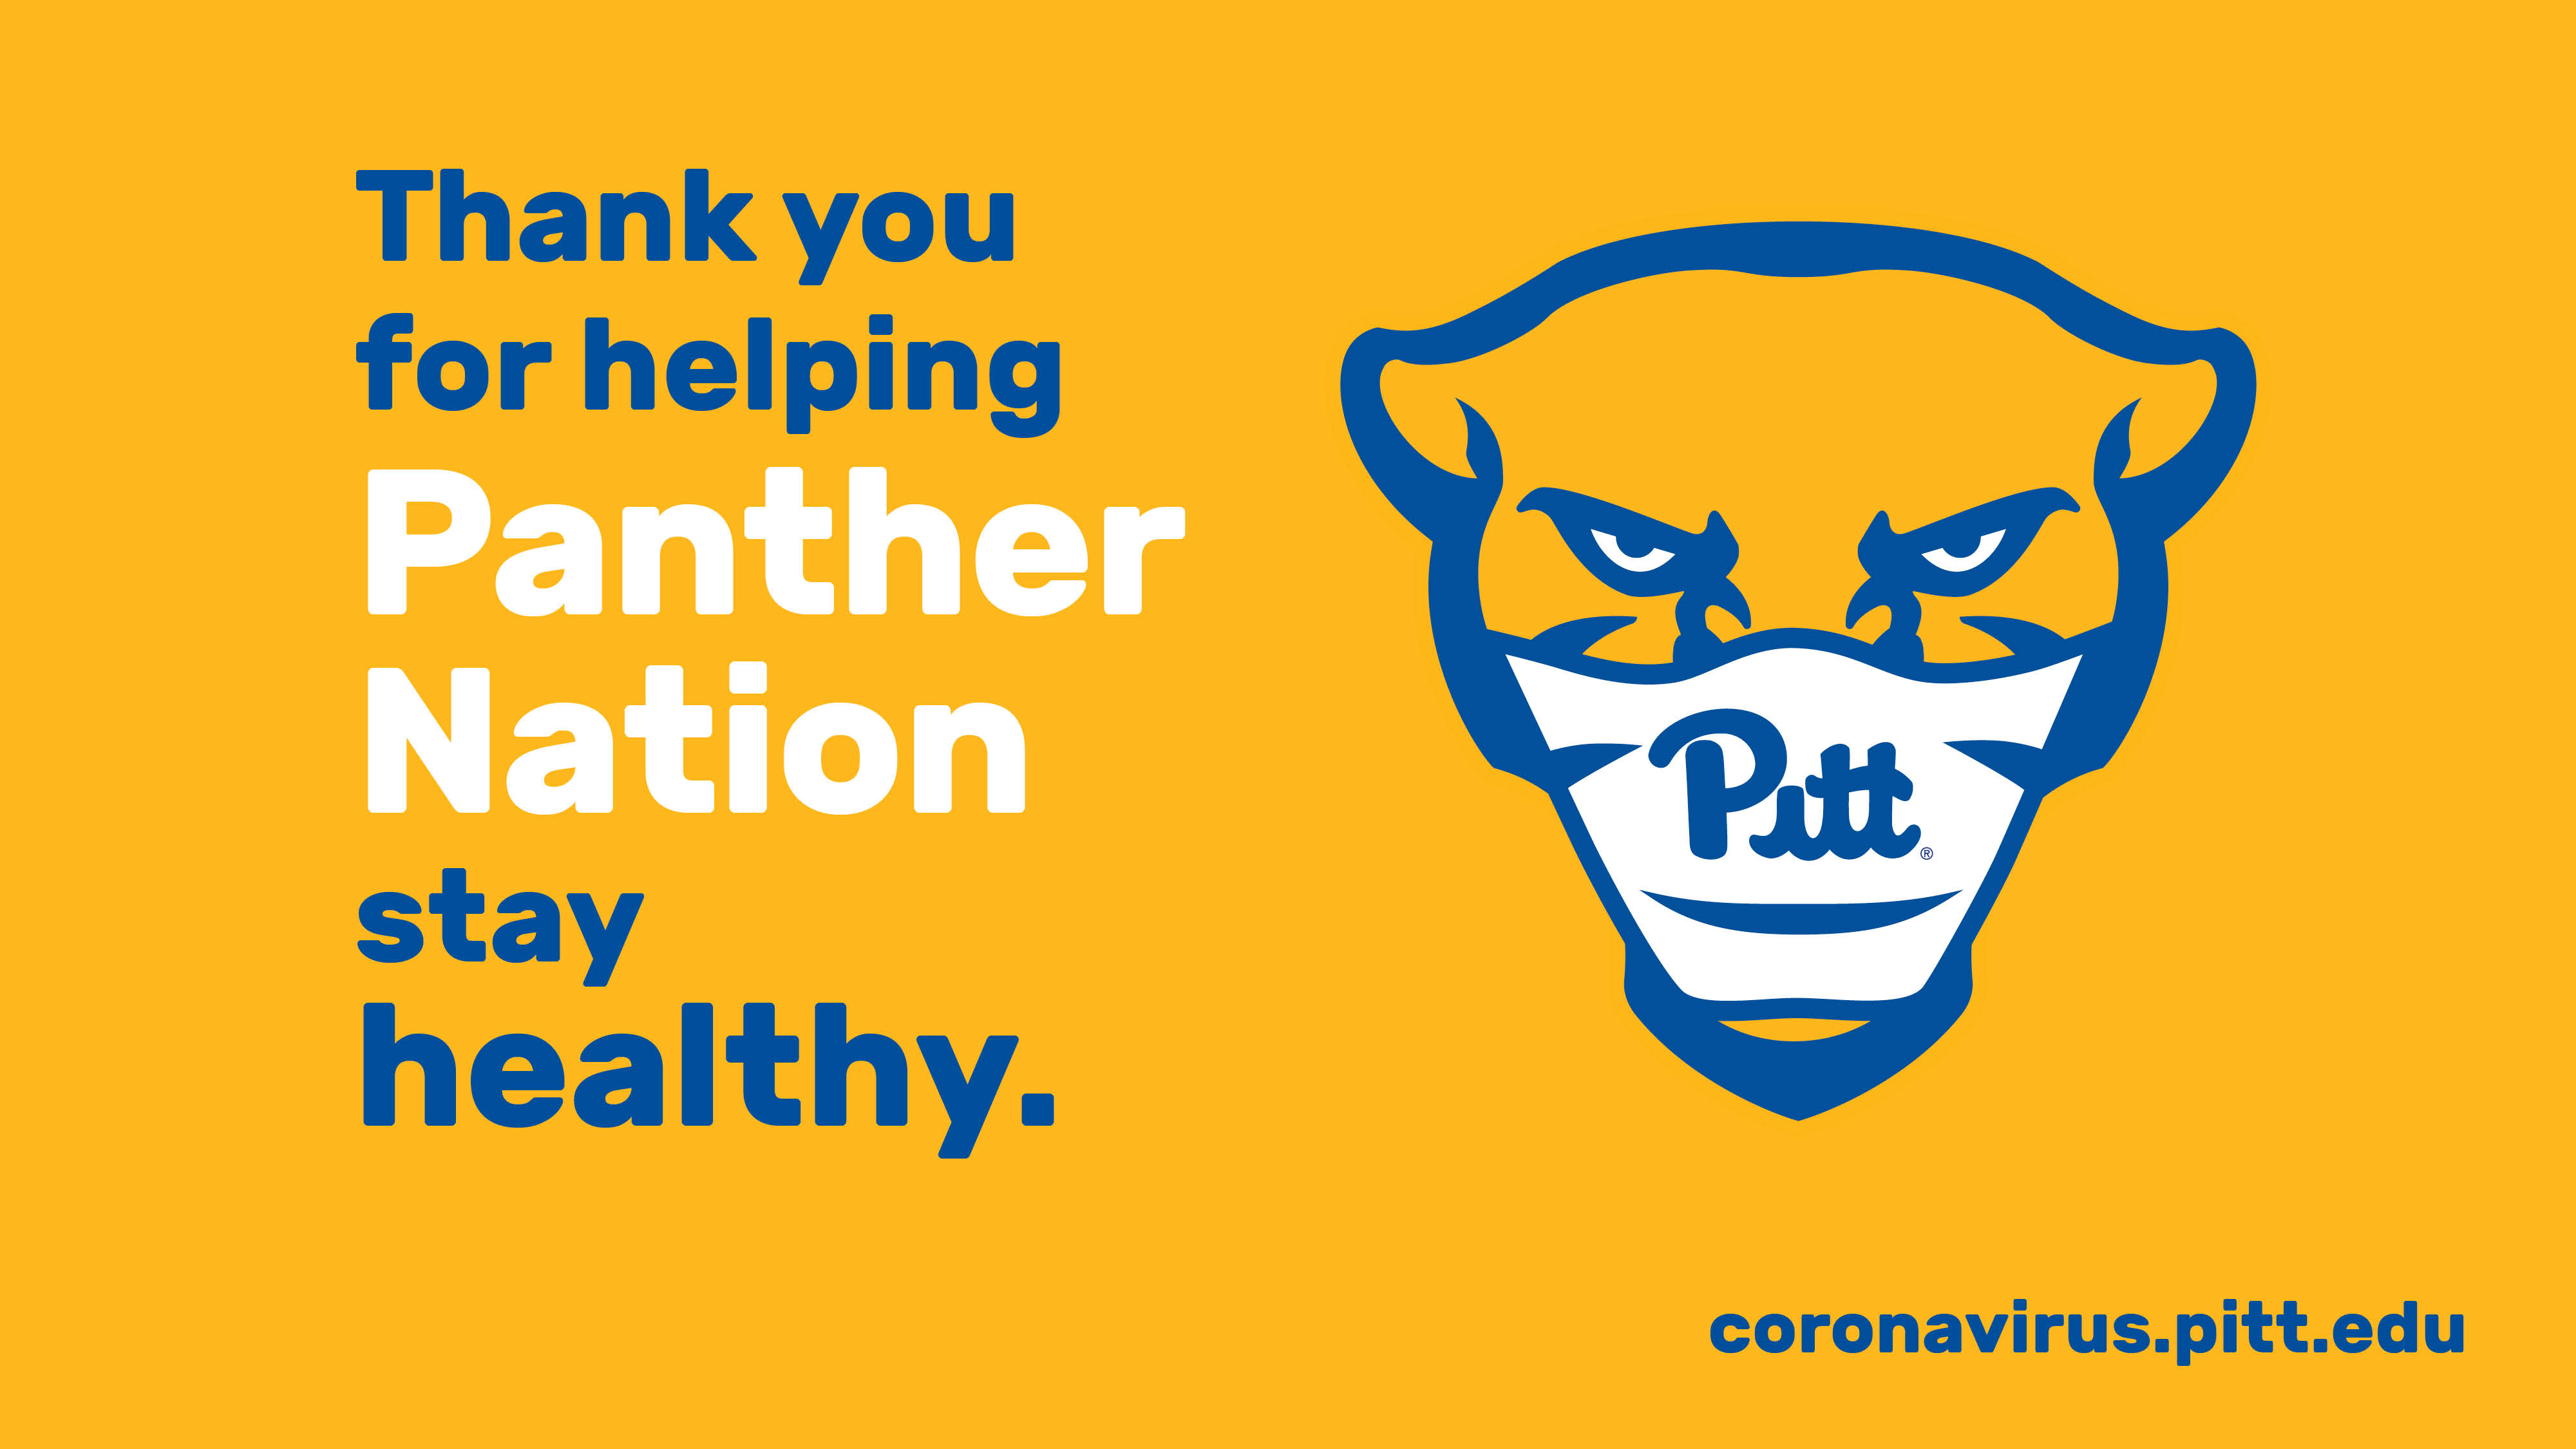 Helping Panther Nation Stay Healthy 1_LED screen_1920x10807